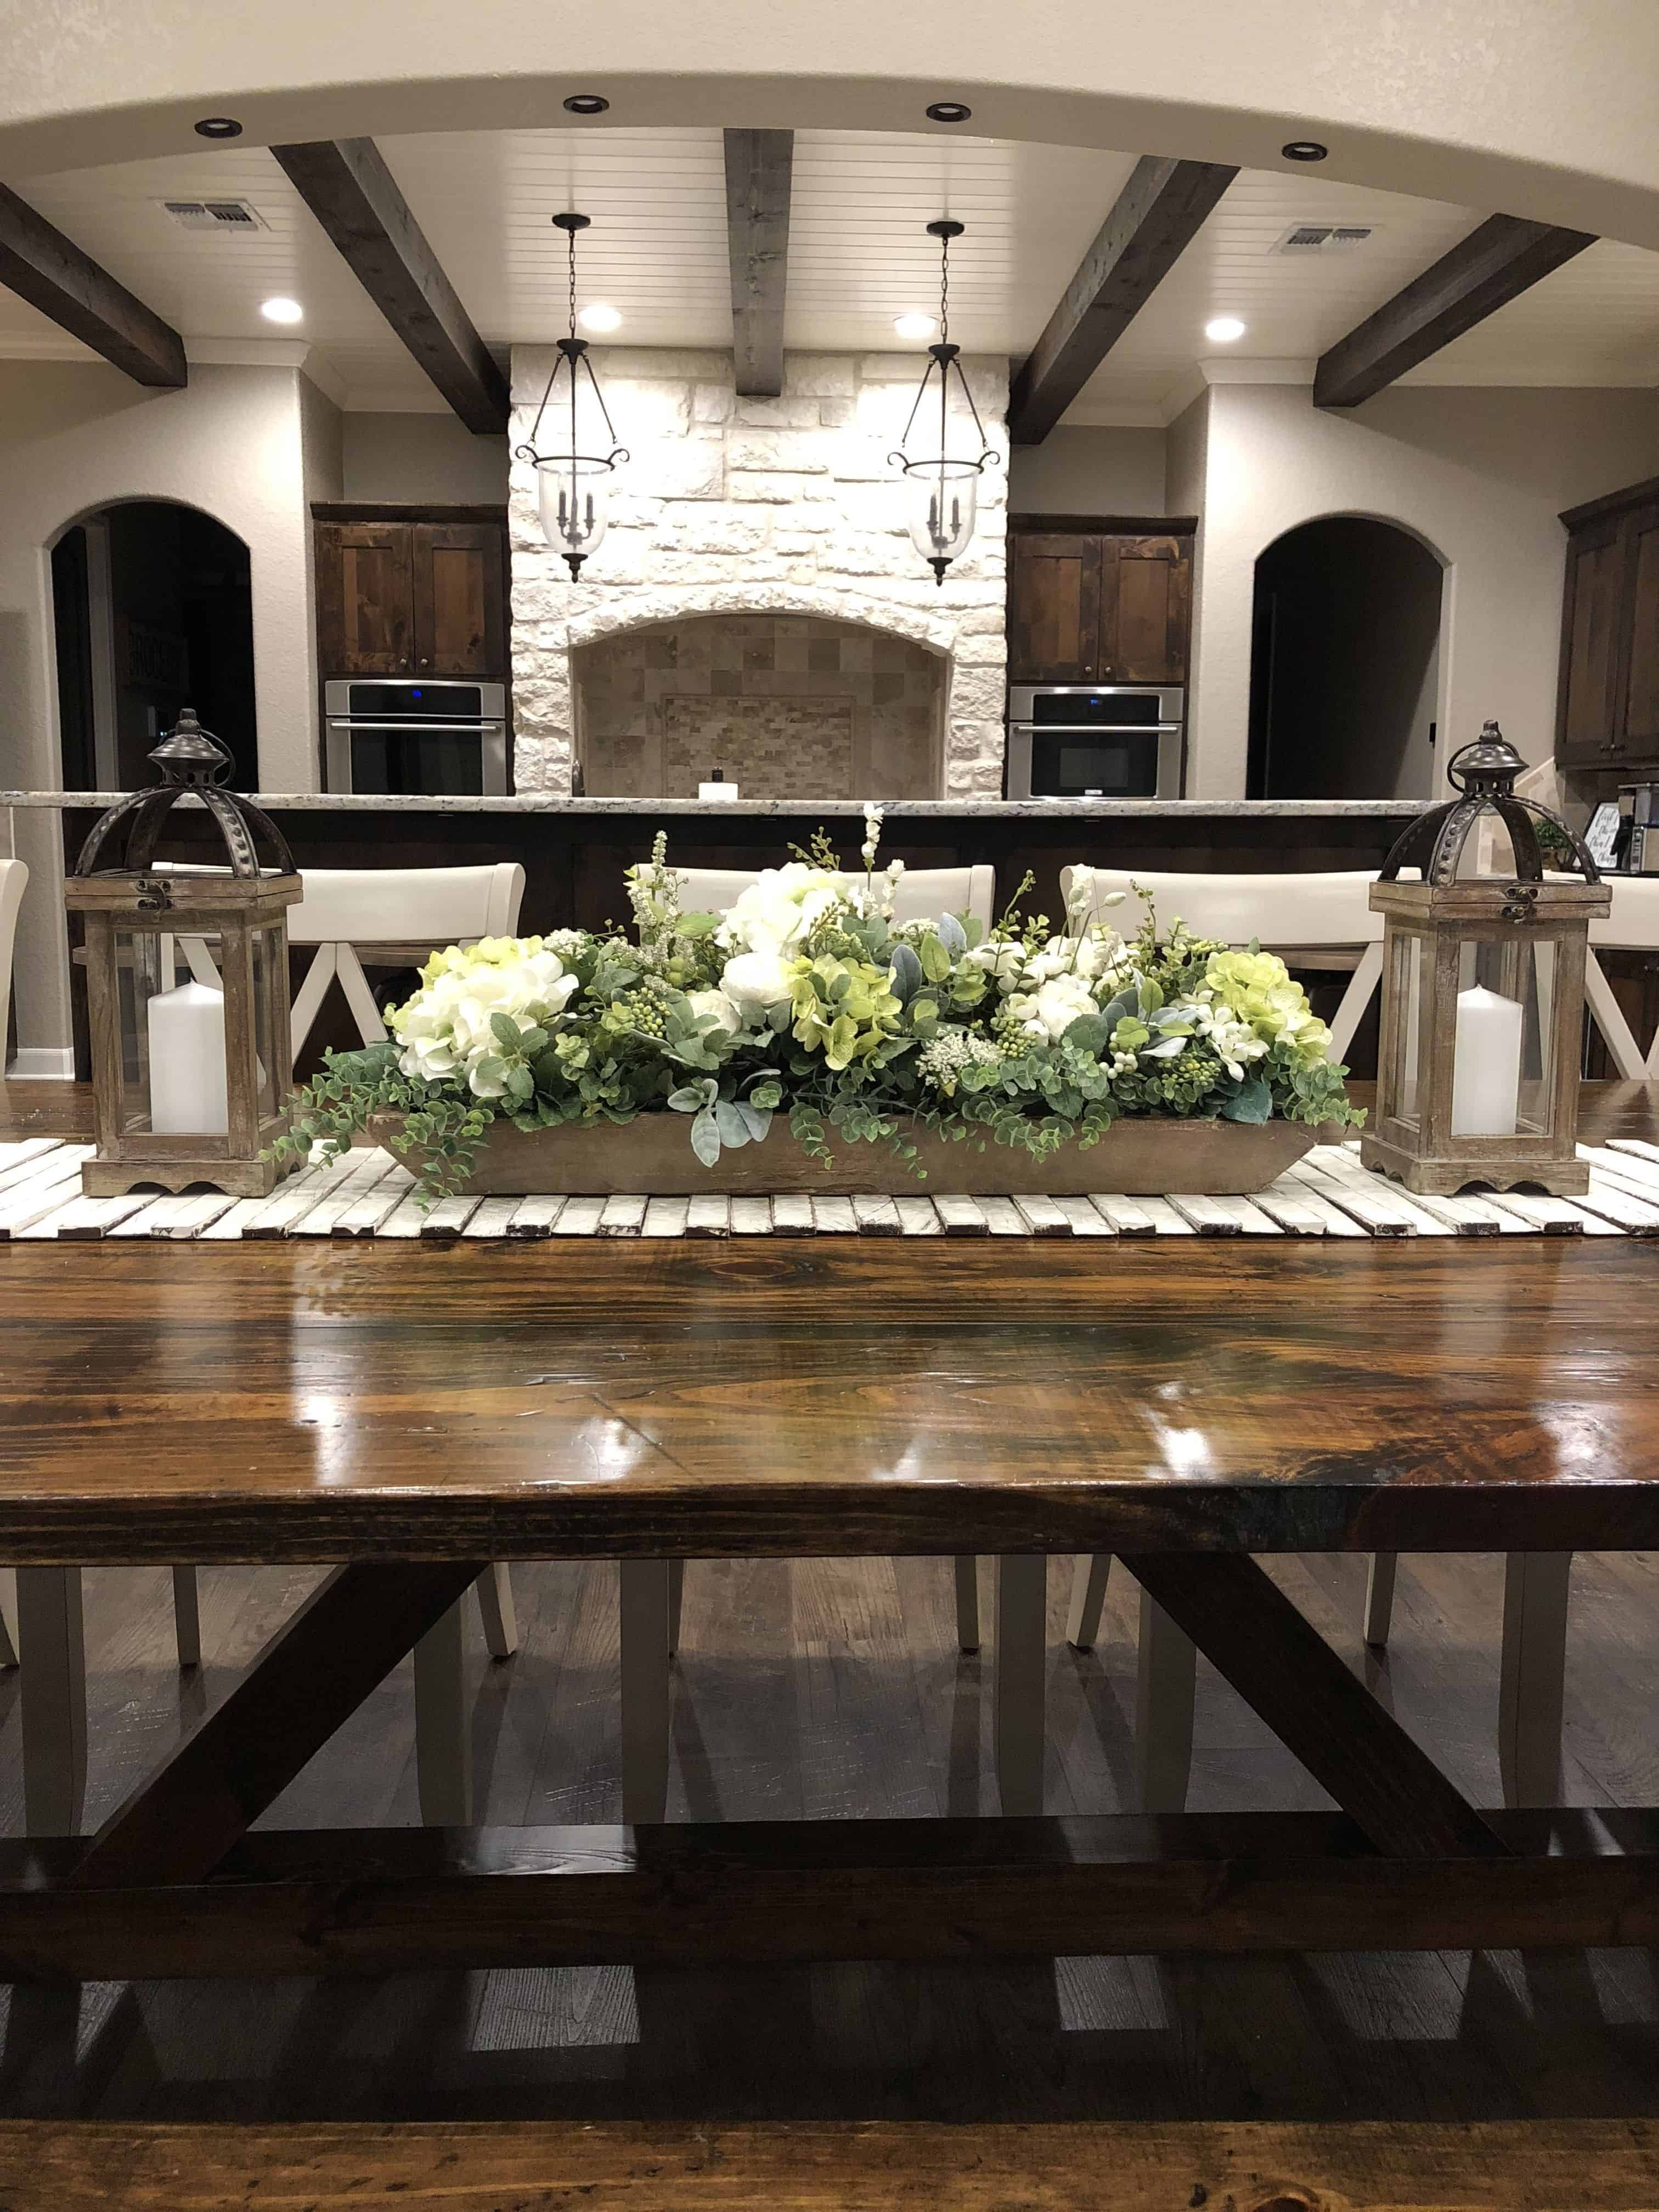 Stunning Fall Dining Room Centerpiece Ideas Source By Brendablack32 Fall Decoring Dining Room Centerpiece Dining Centerpiece Dining Room Table Centerpieces